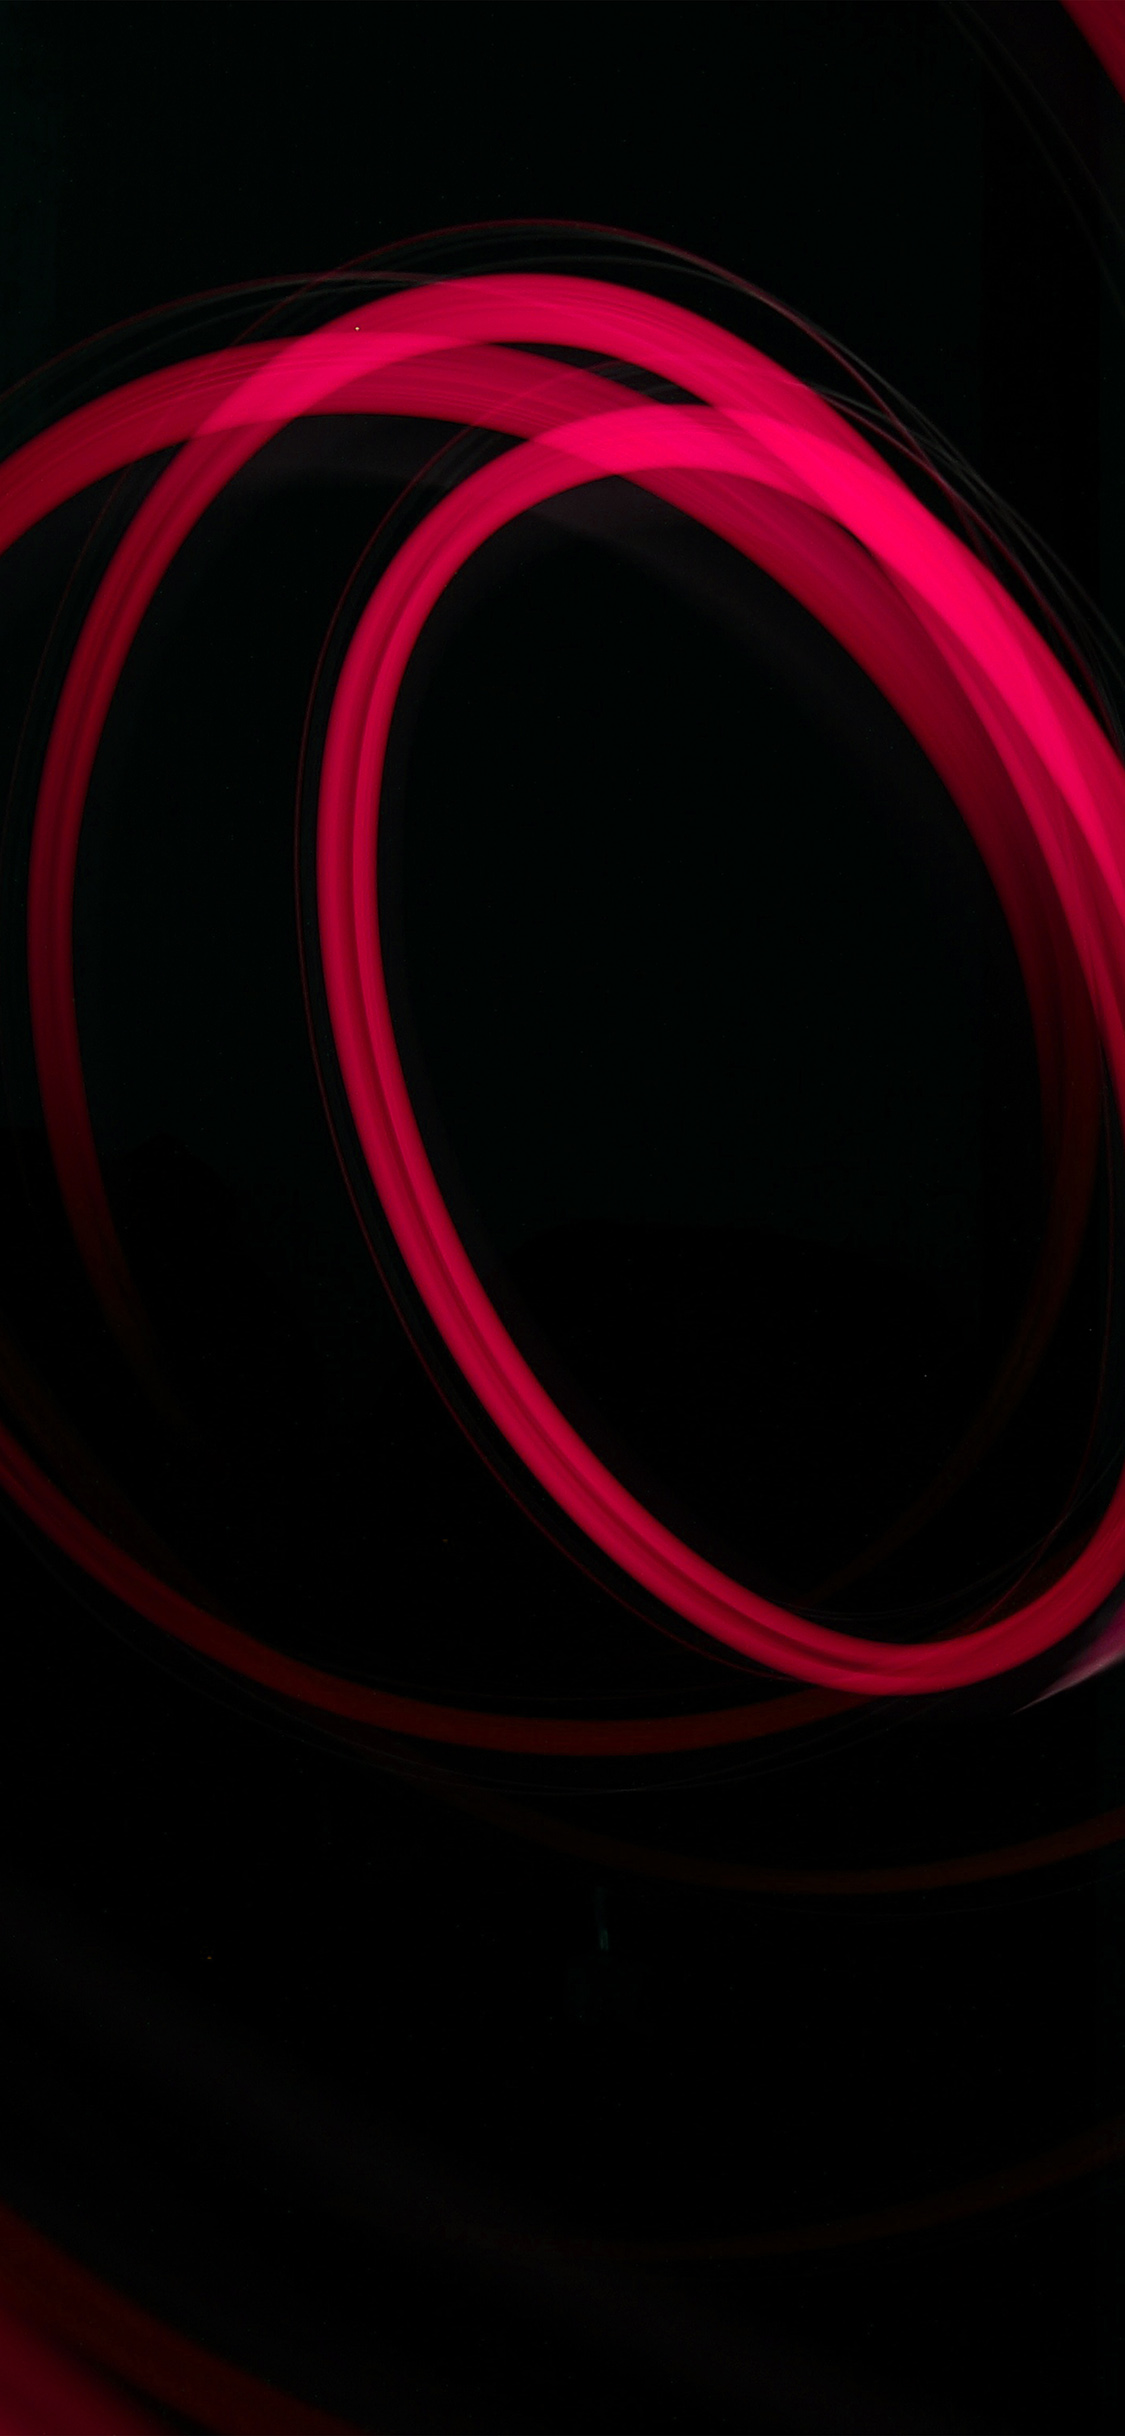 iPhonexpapers.com-Apple-iPhone-wallpaper-vo49-circle-light-dark-red-pattern